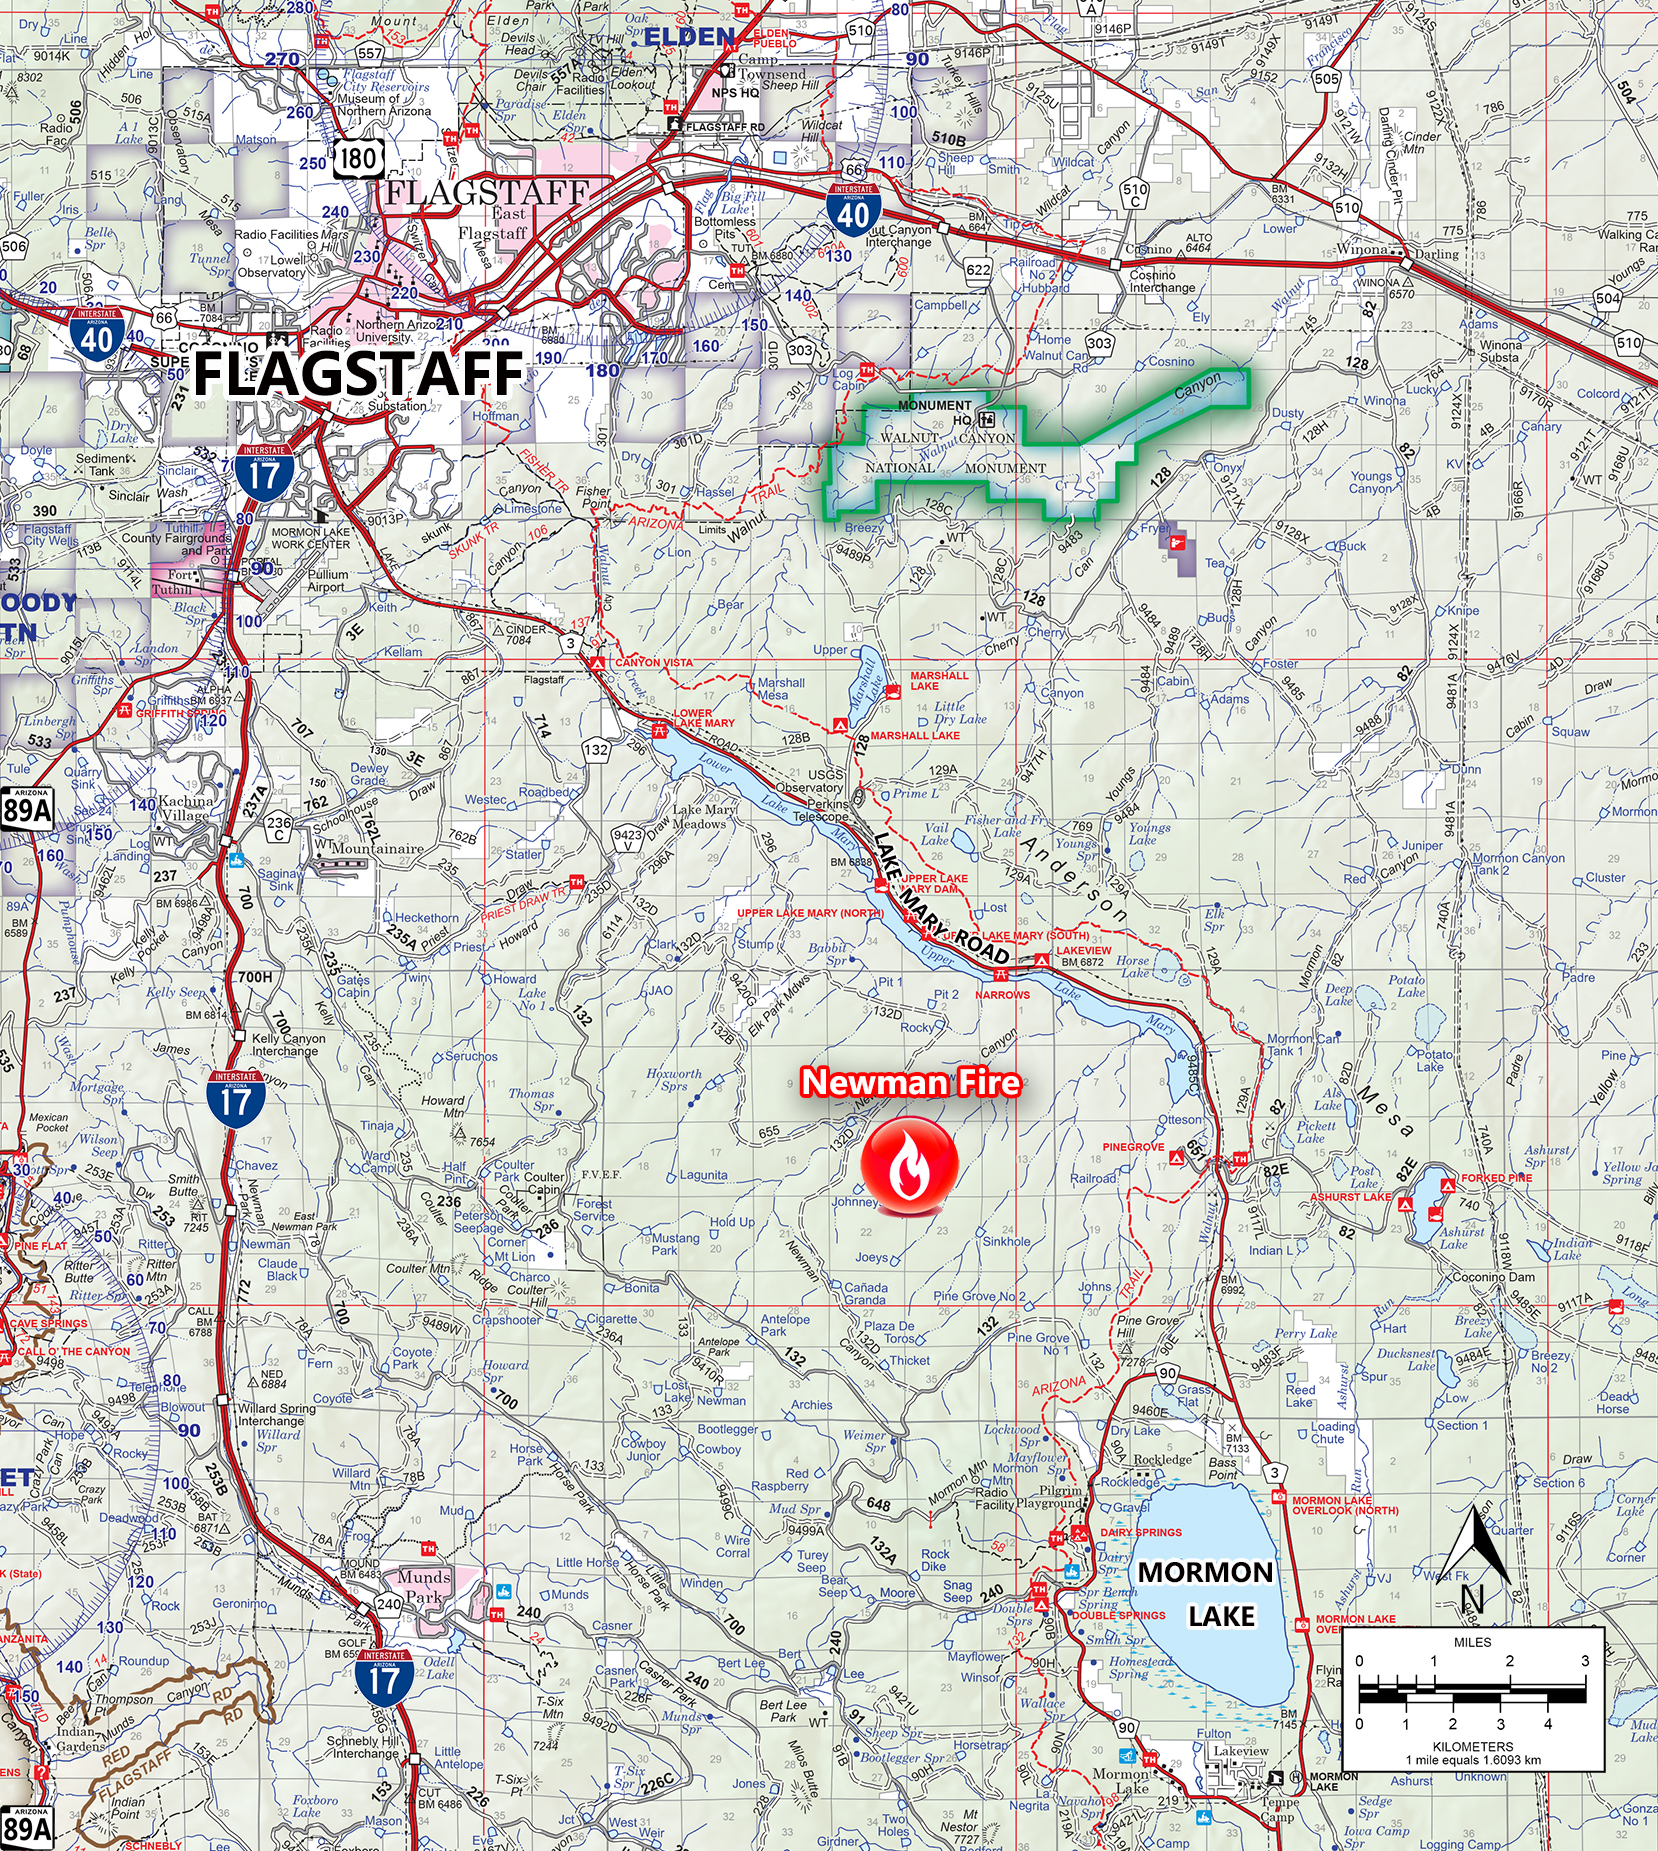 The image shows a map and a fire icon indicating the location of the Newman Fire.